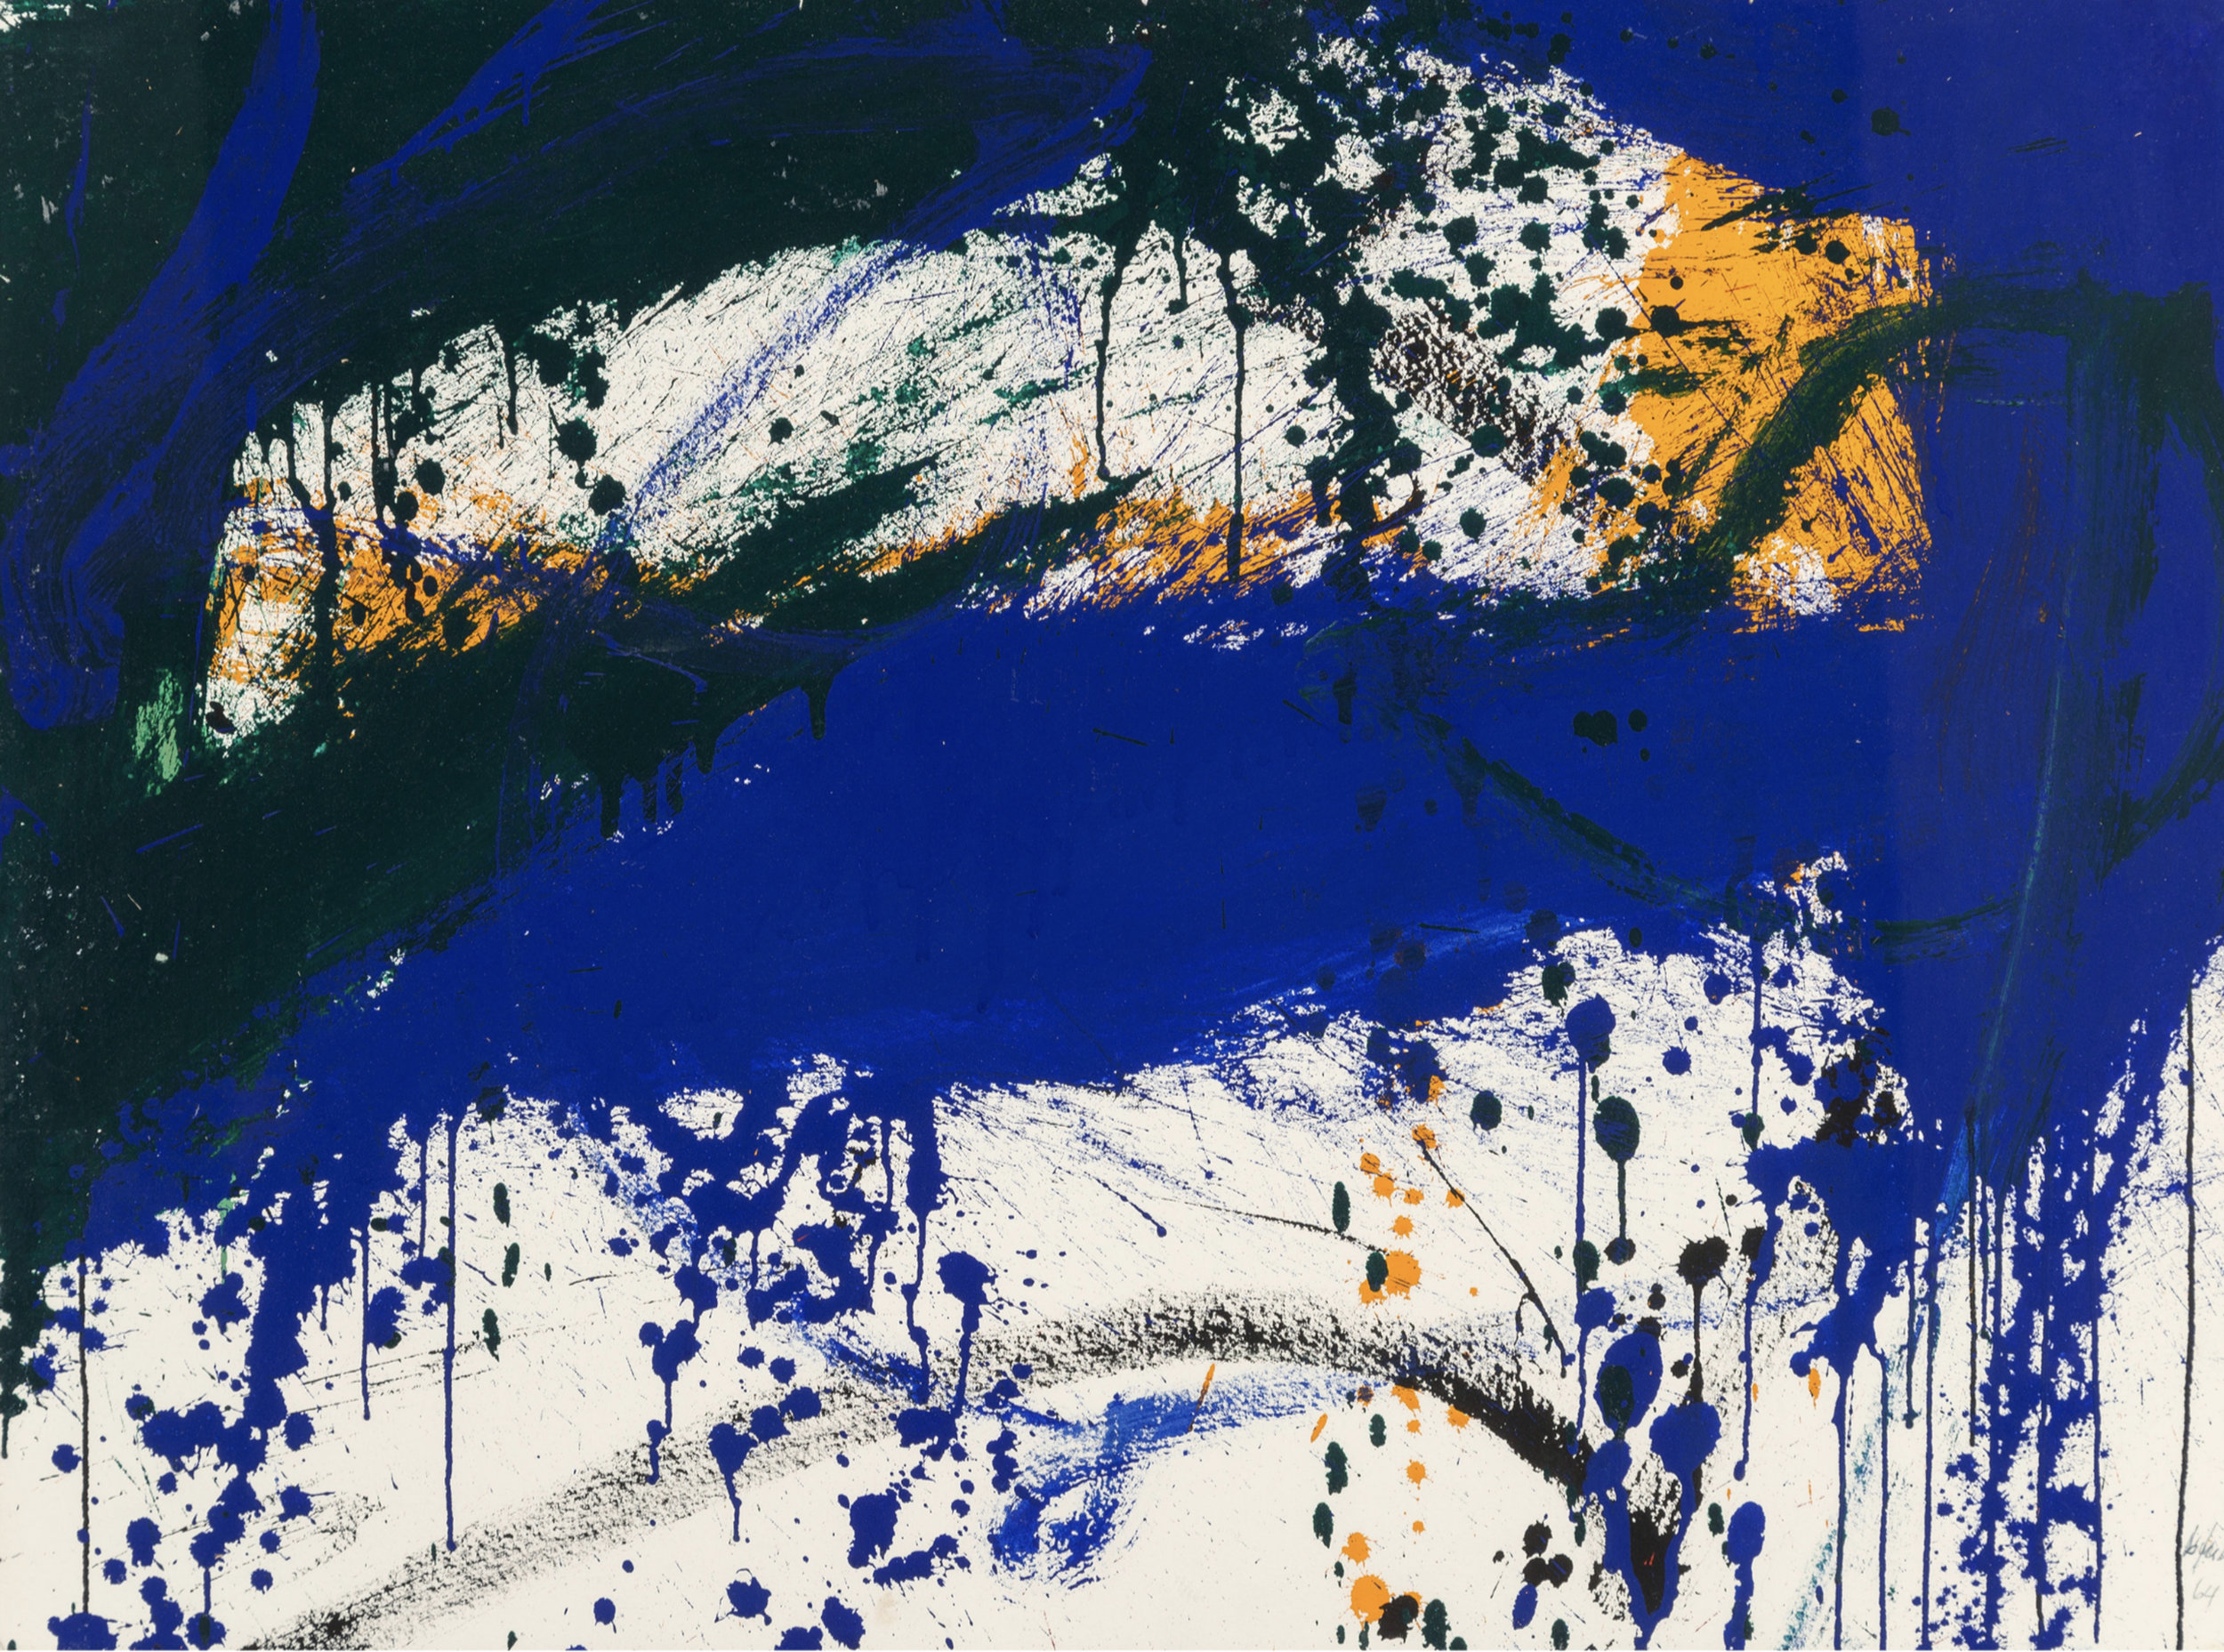 Sweet Sue   ,  Ink and acrylic on Arches paper, 1964, 22 3/8 x 30 3/8 inches